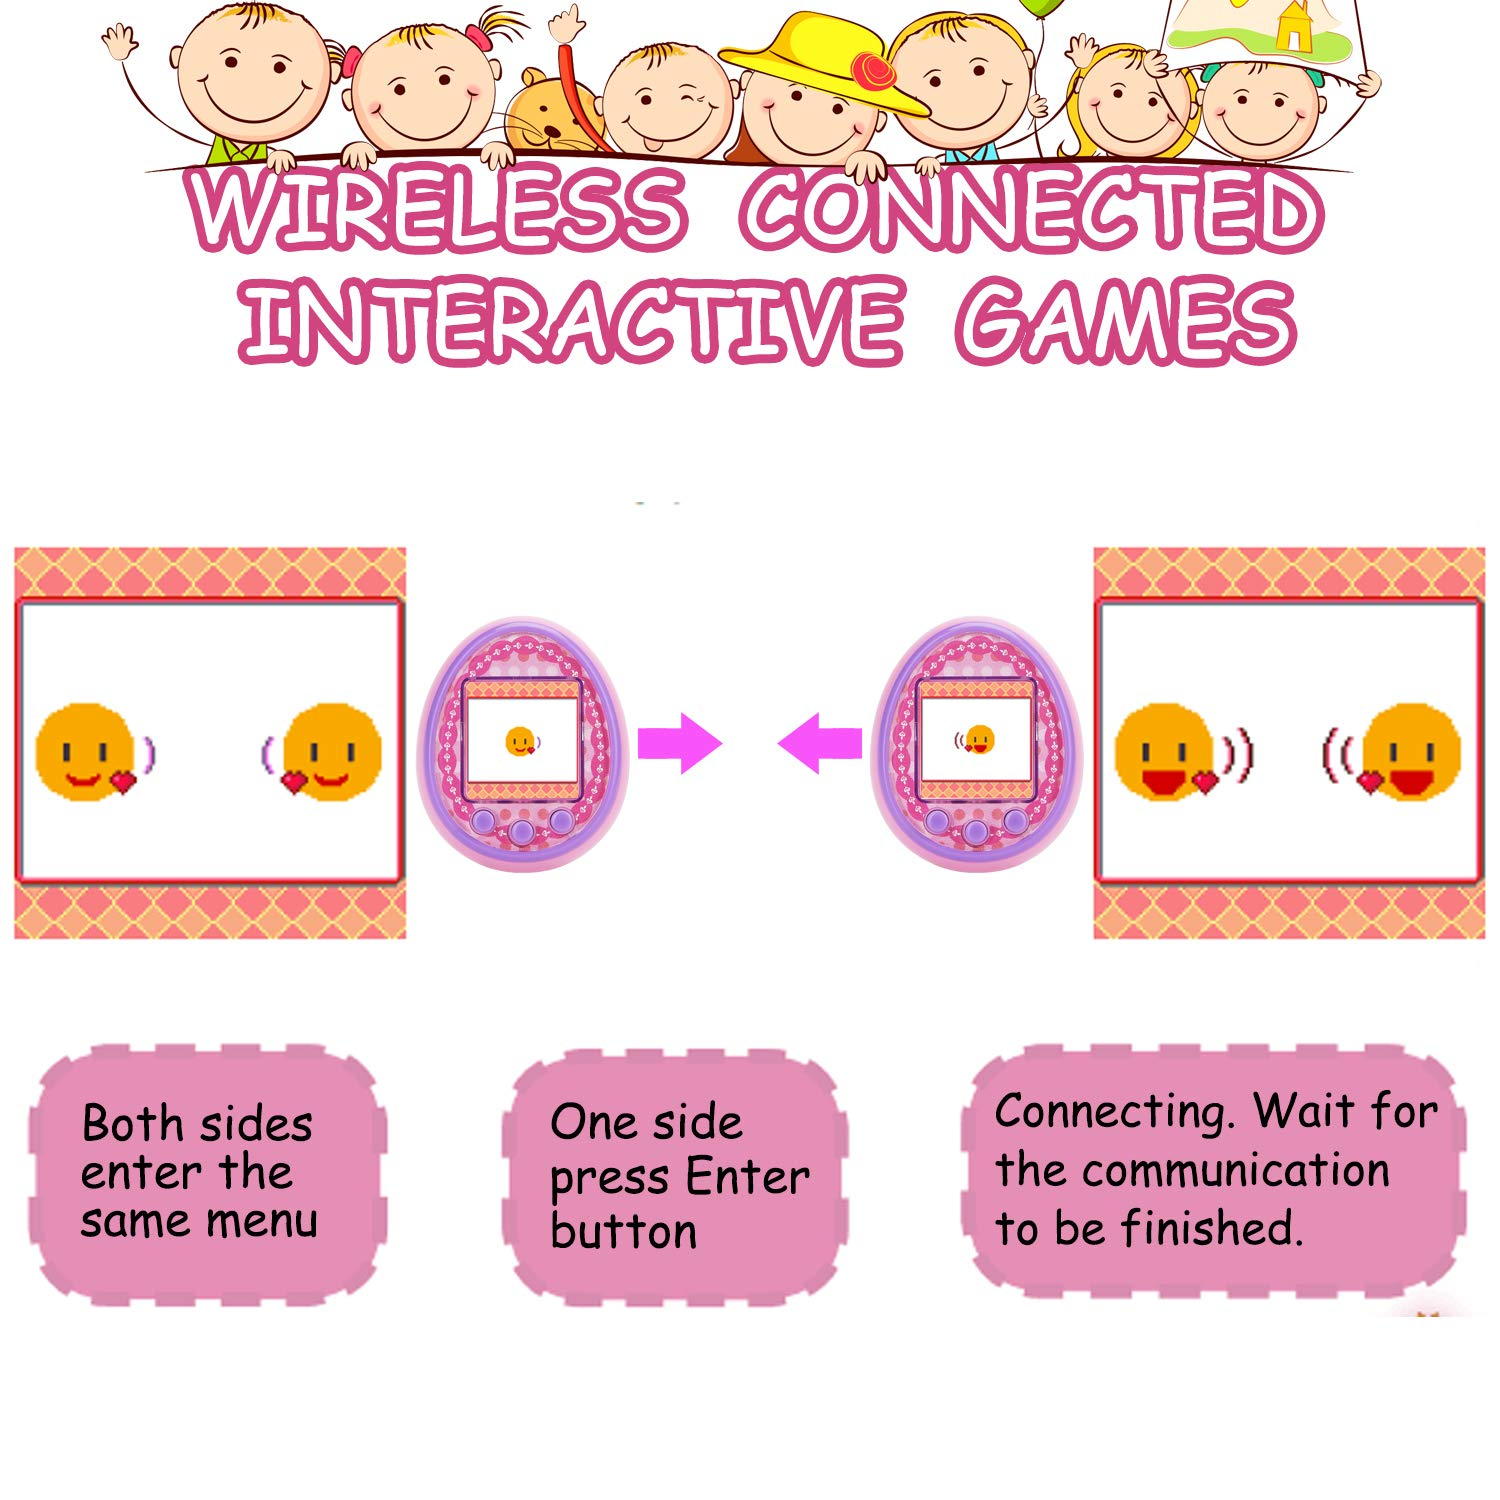 Virtual Digital Pets Toys Electronic Pets Game Machine HD Color Screen for Over 6 Years Old Child Toy 2019 New Version as a Best Birthday Gift for Boys Girls by Touma pets (Image #6)